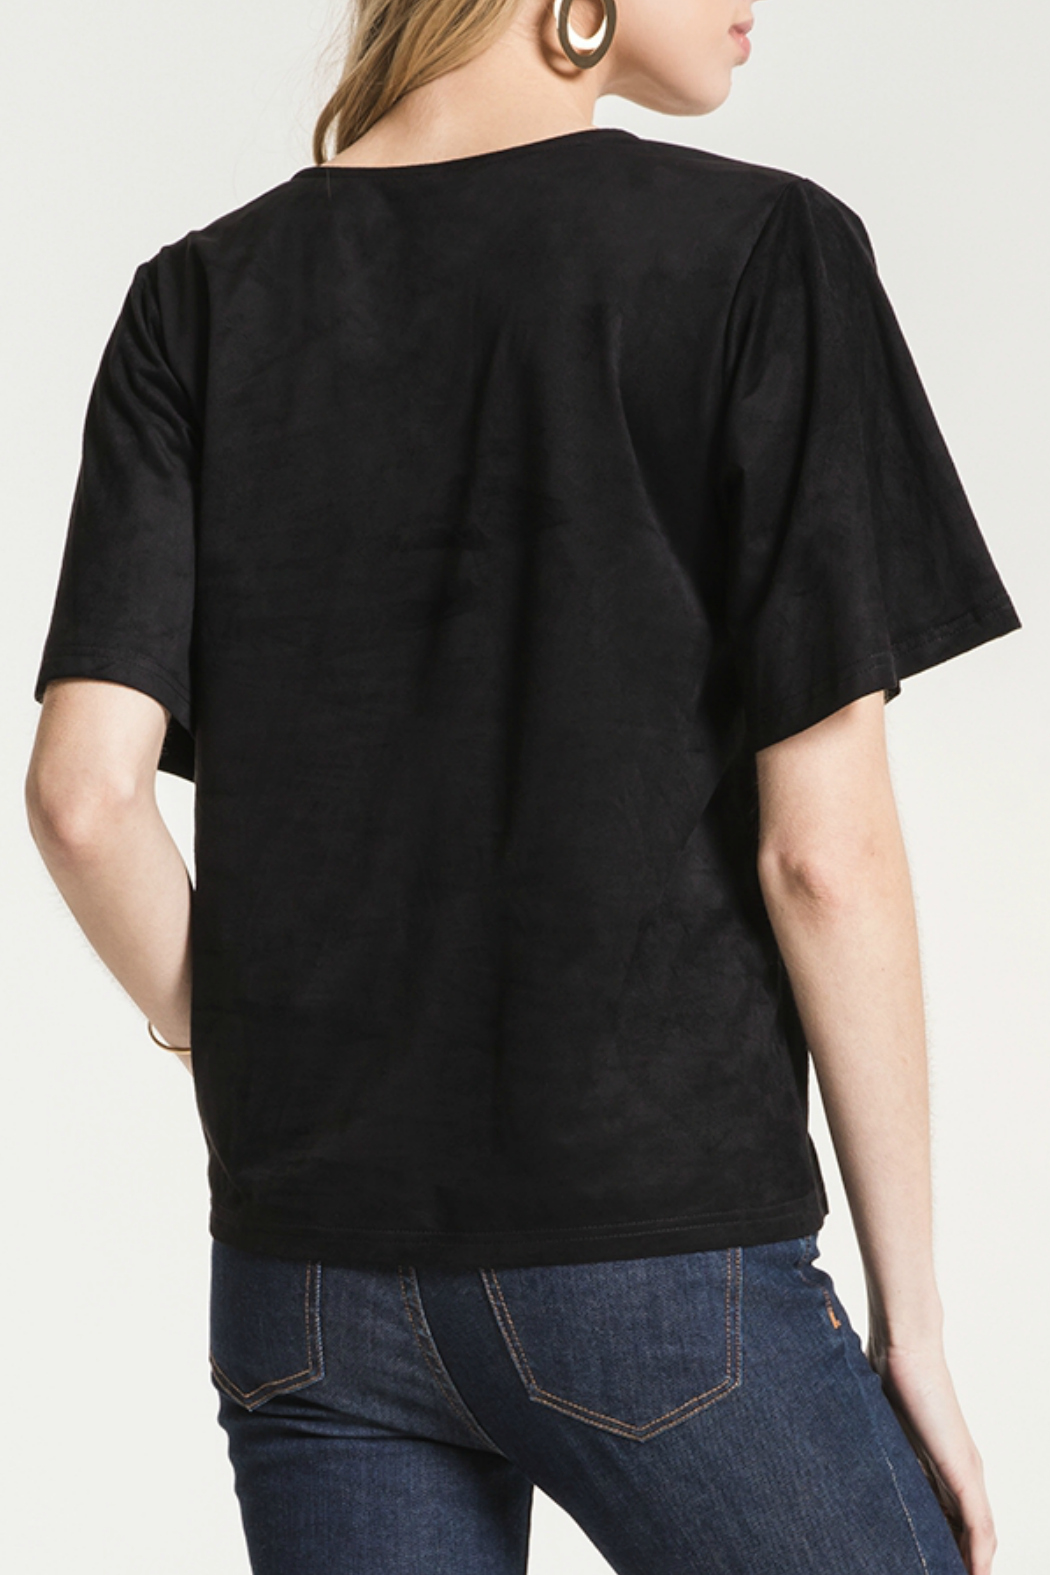 z supply The Faux Suede Flutter Tee - Front Full Image